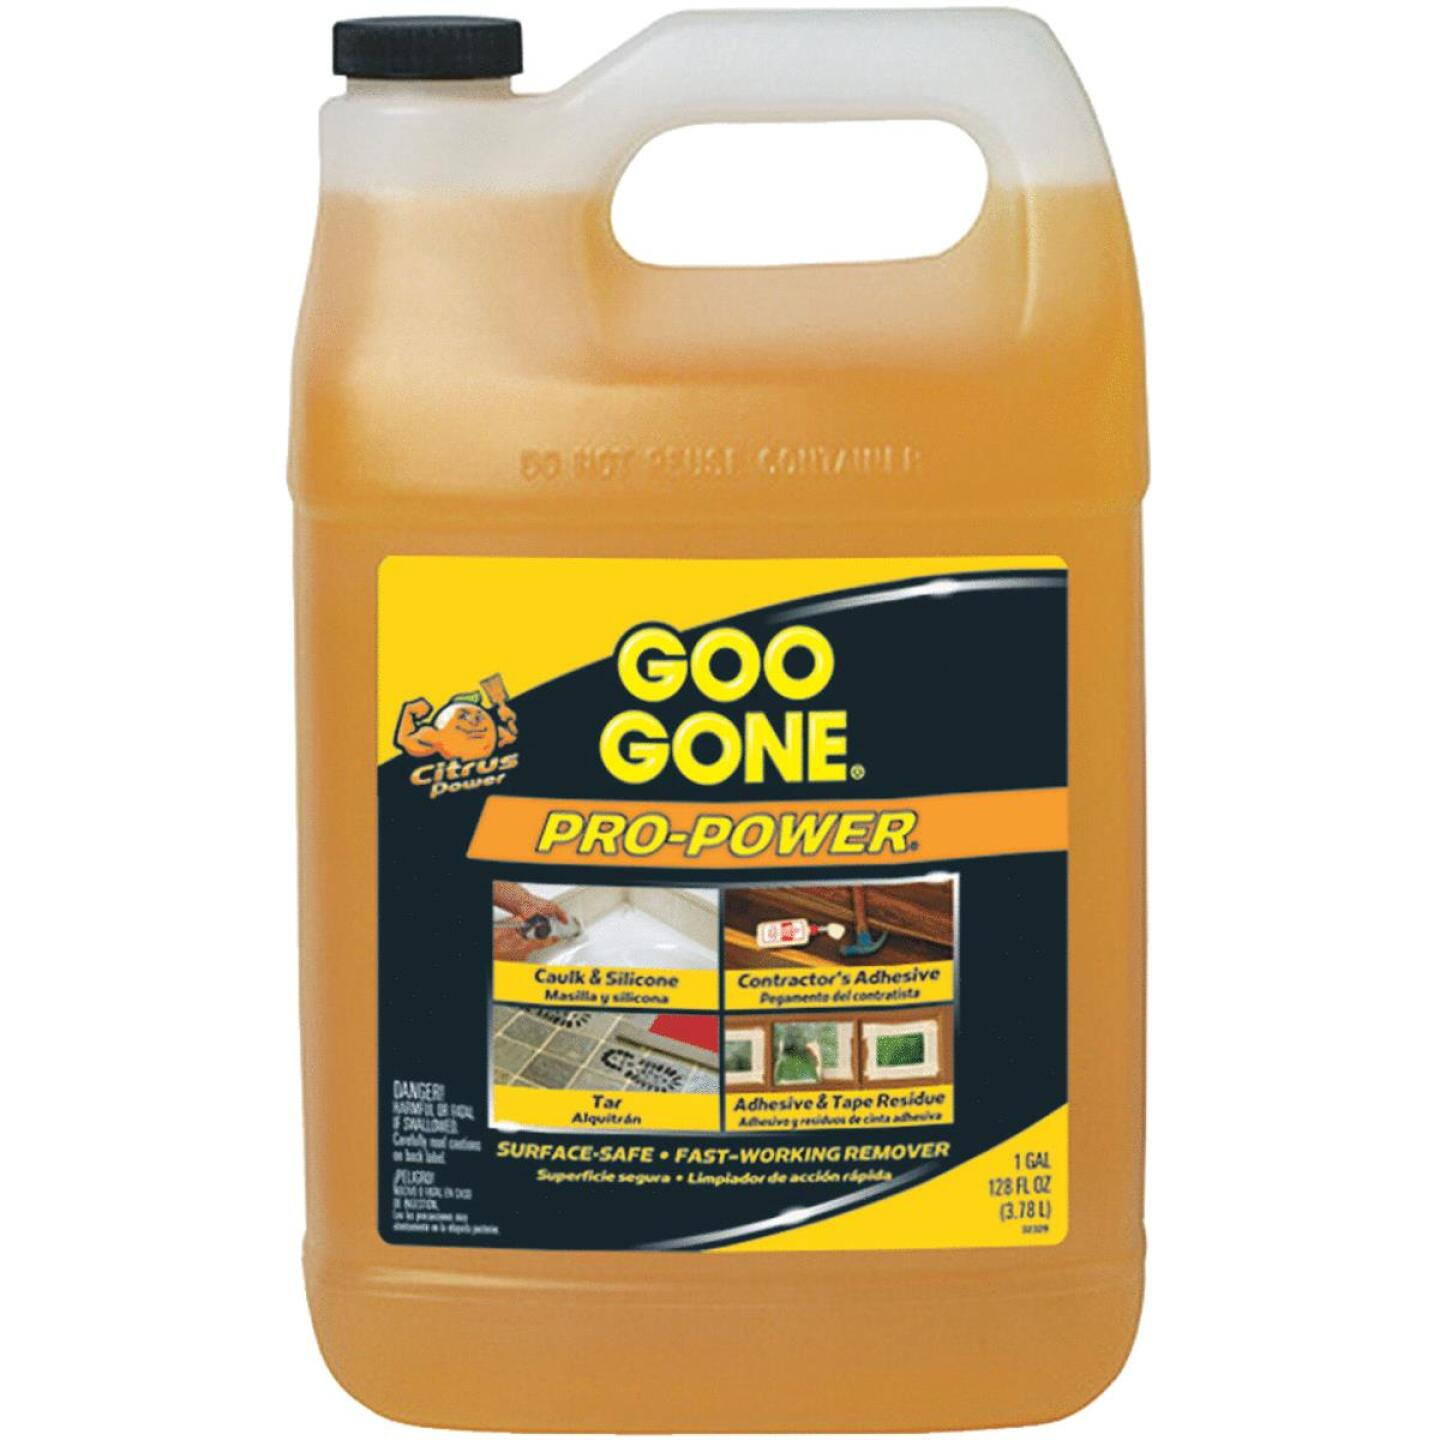 Goo Gone 1 Gal. Pro-Power Adhesive Remover Image 243